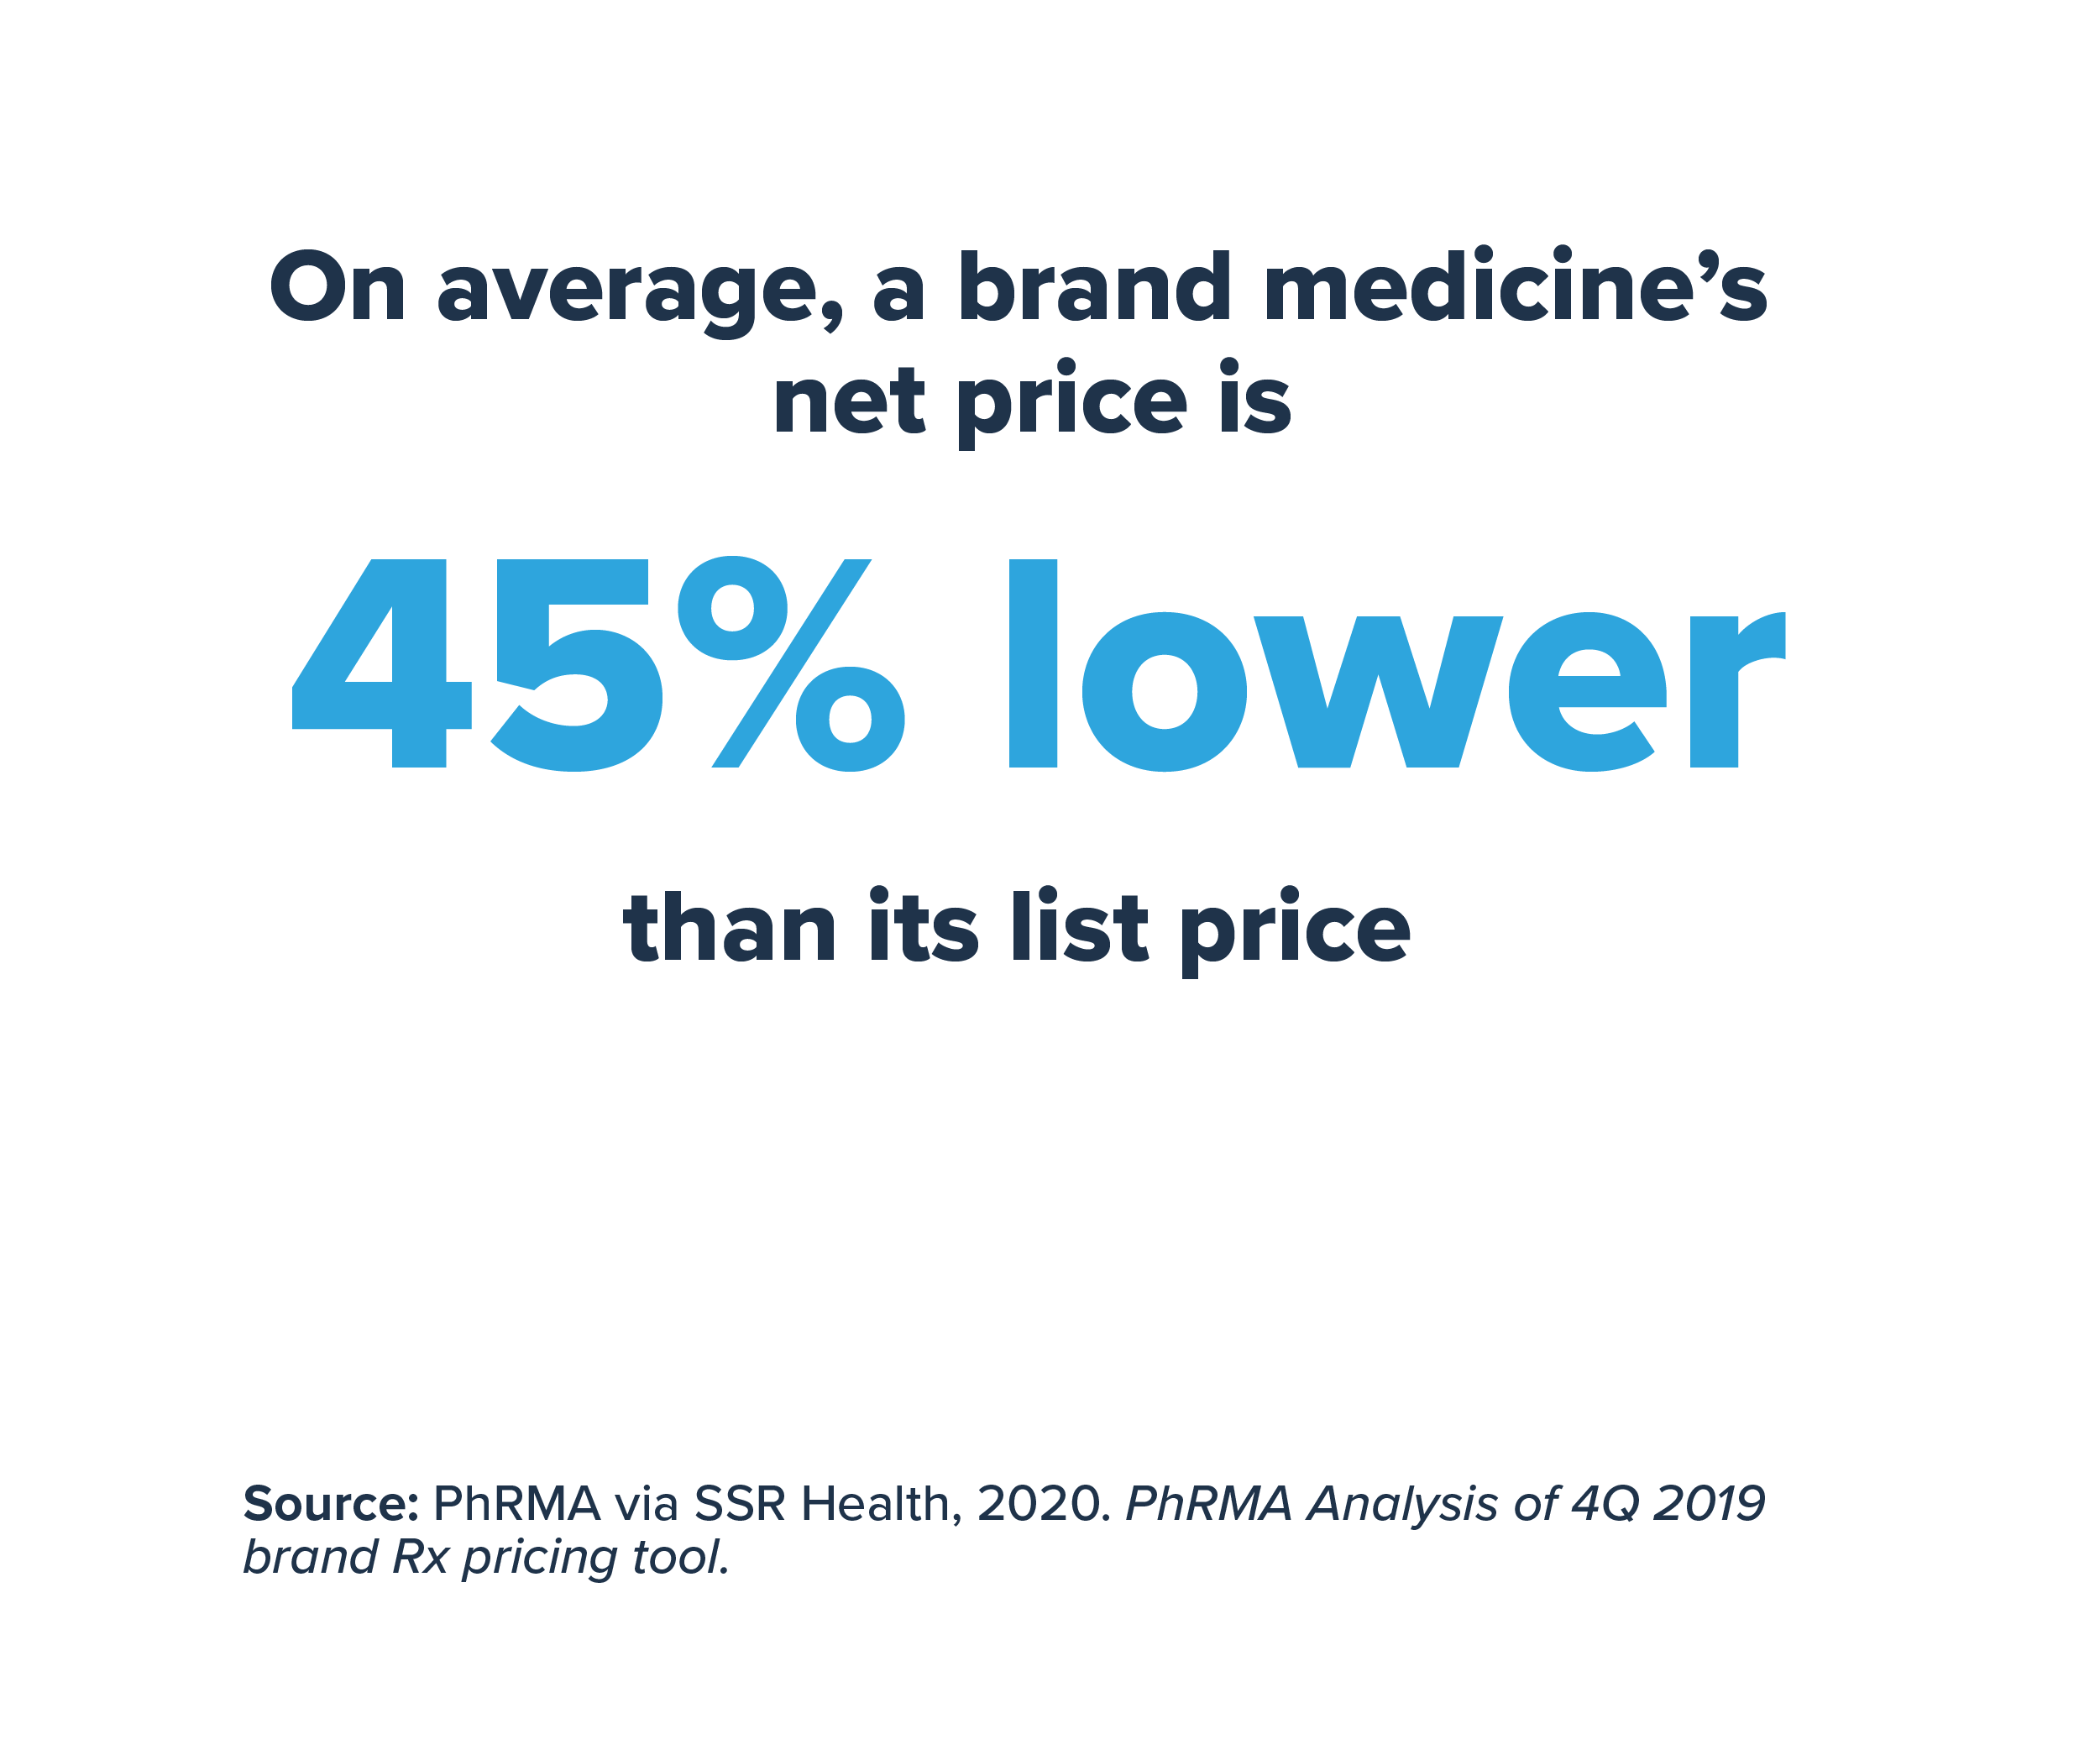 On average, a brand medicine net price is 45 percent lower than its list price